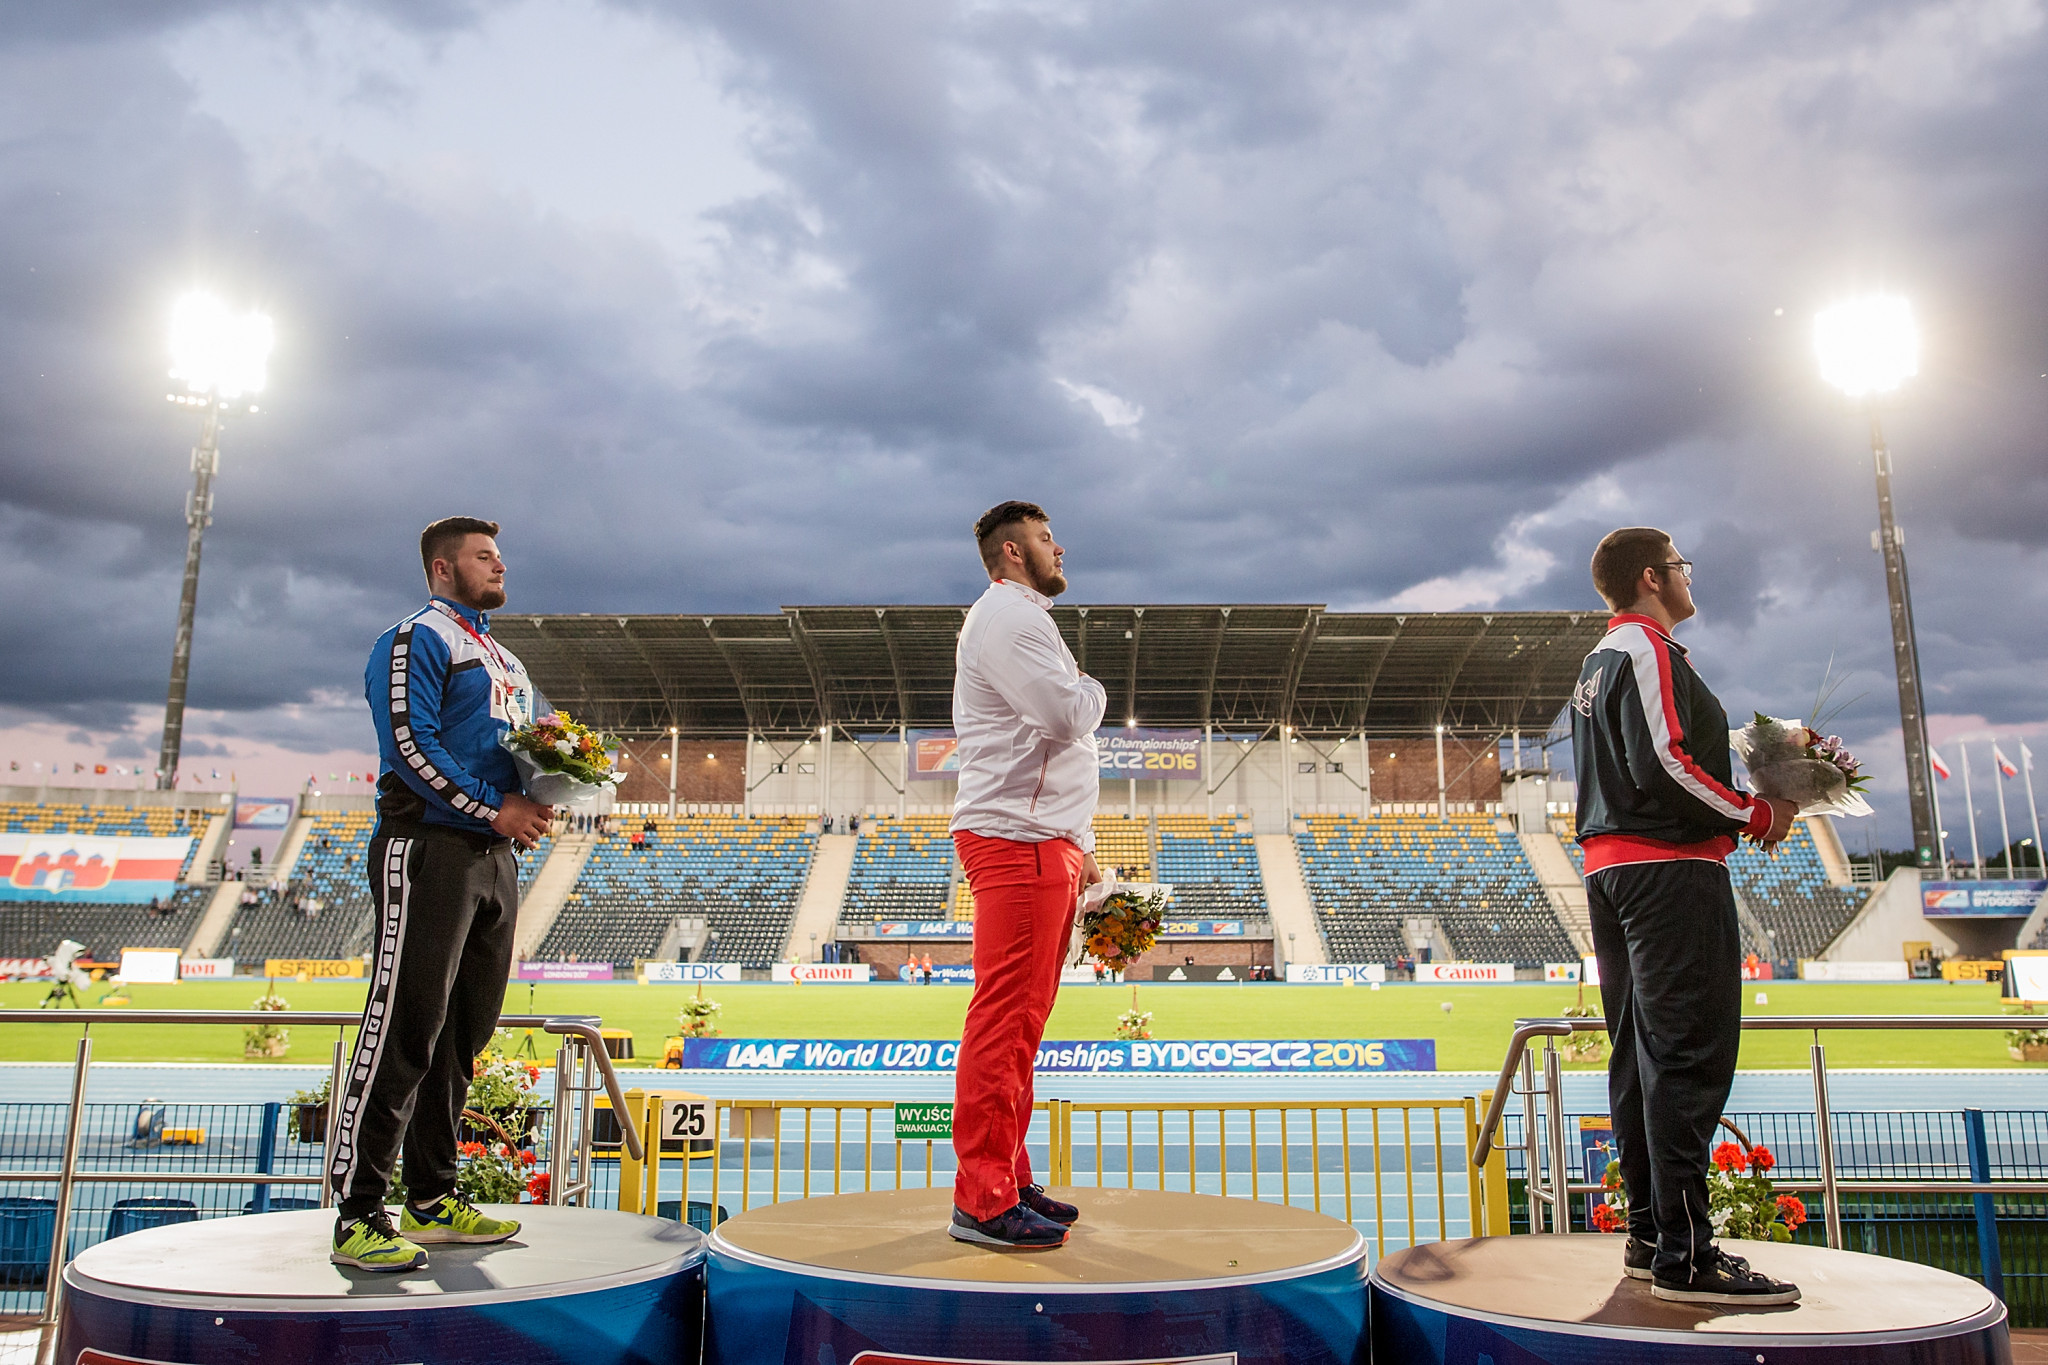 America's Bronson Osborn, right, is set to be upgraded to the gold in the shot put at the 2016 World U20 Championships after the two ahead of him, Poland's  Konrad Bukowiecki, centre, and Romania's Andrei Toader, left, failed drugs tests ©Getty Images